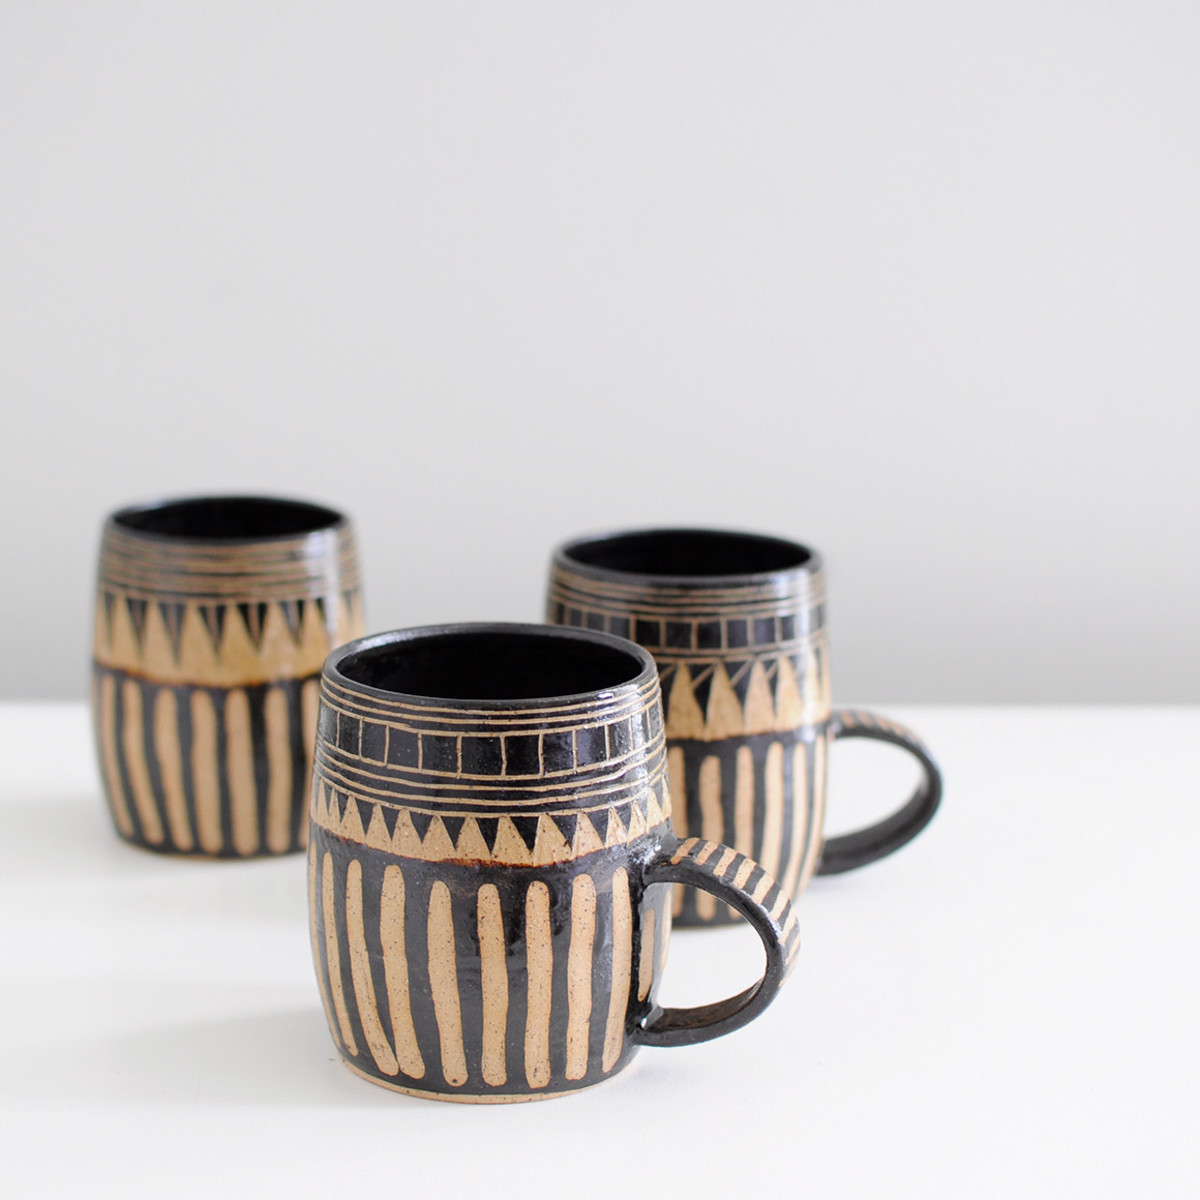 little bear pots mug black garmentory. Black Bedroom Furniture Sets. Home Design Ideas